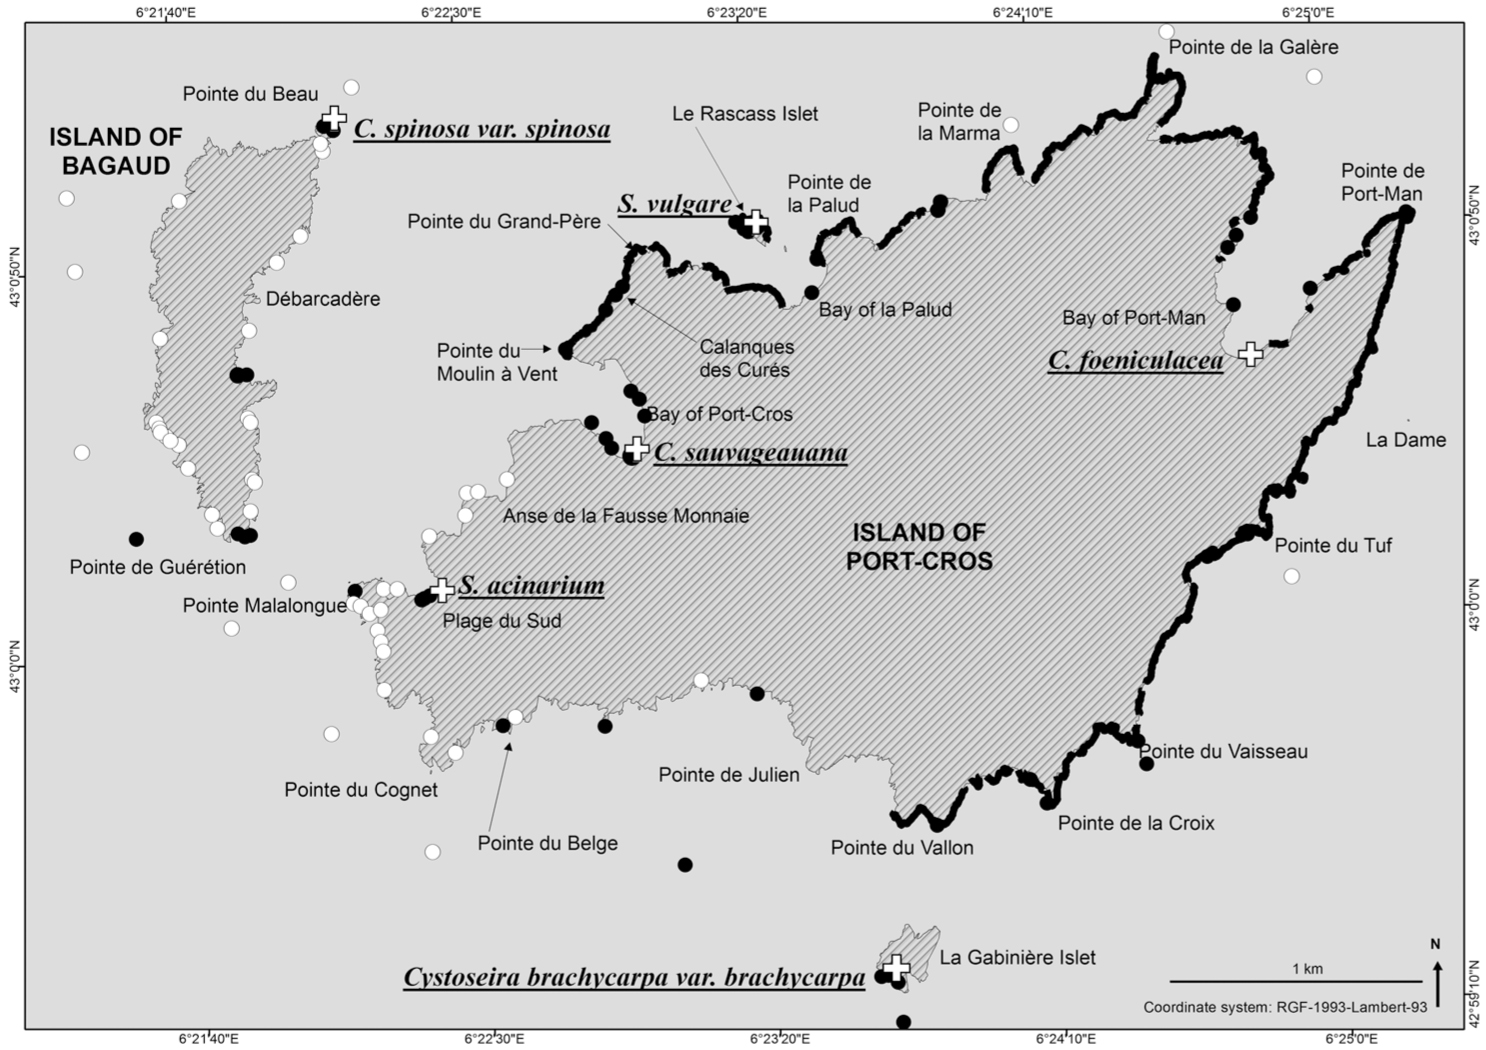 Unexpected Temporal Stability of Cystoseira and Sargassum Forests in